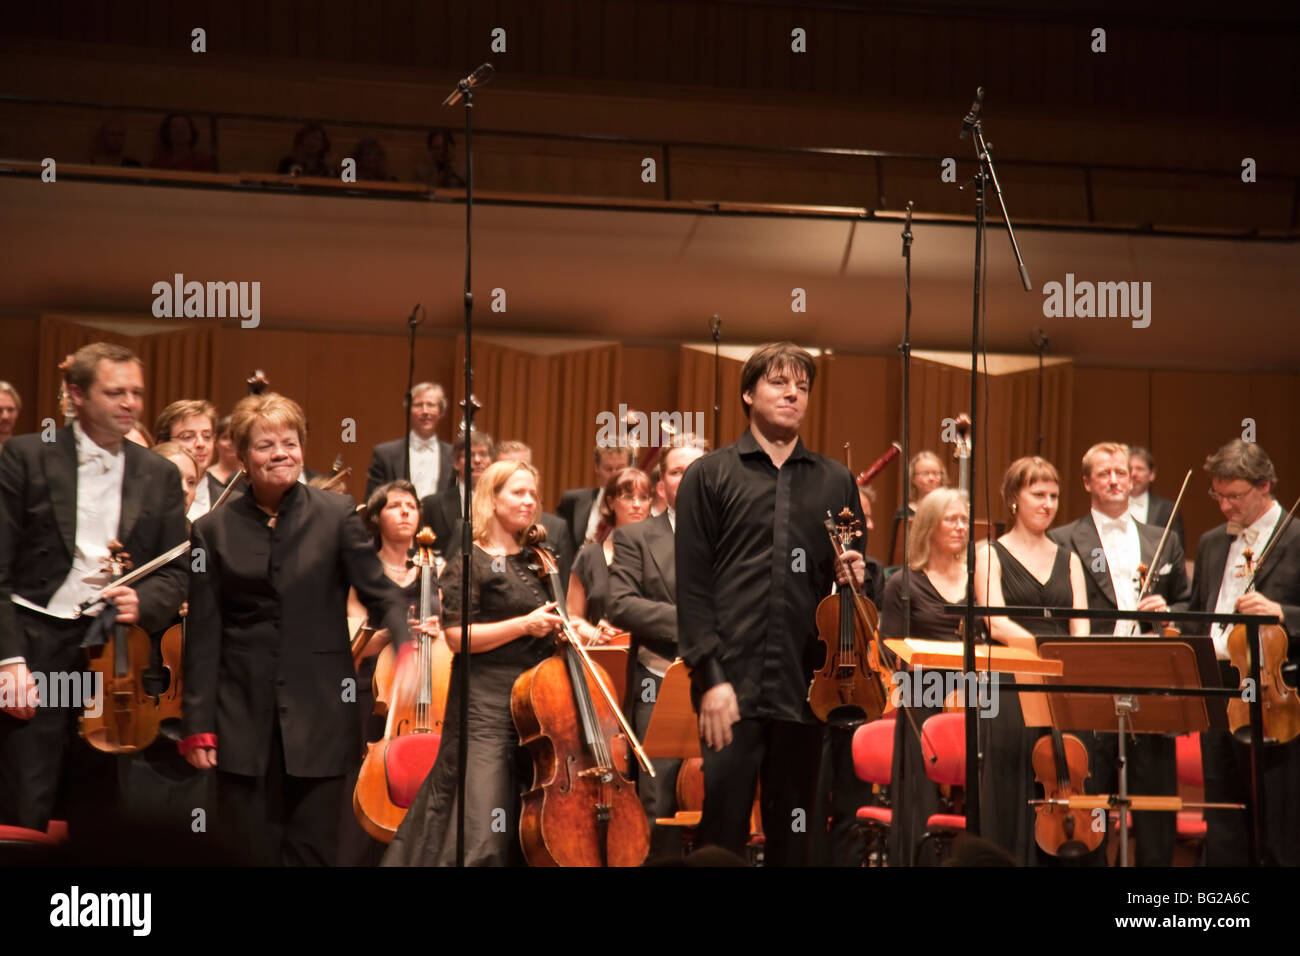 Swedish Radio symphony orchestra with conductor Marin Alsop and soloist violinist Joshua Bell - Stock Image